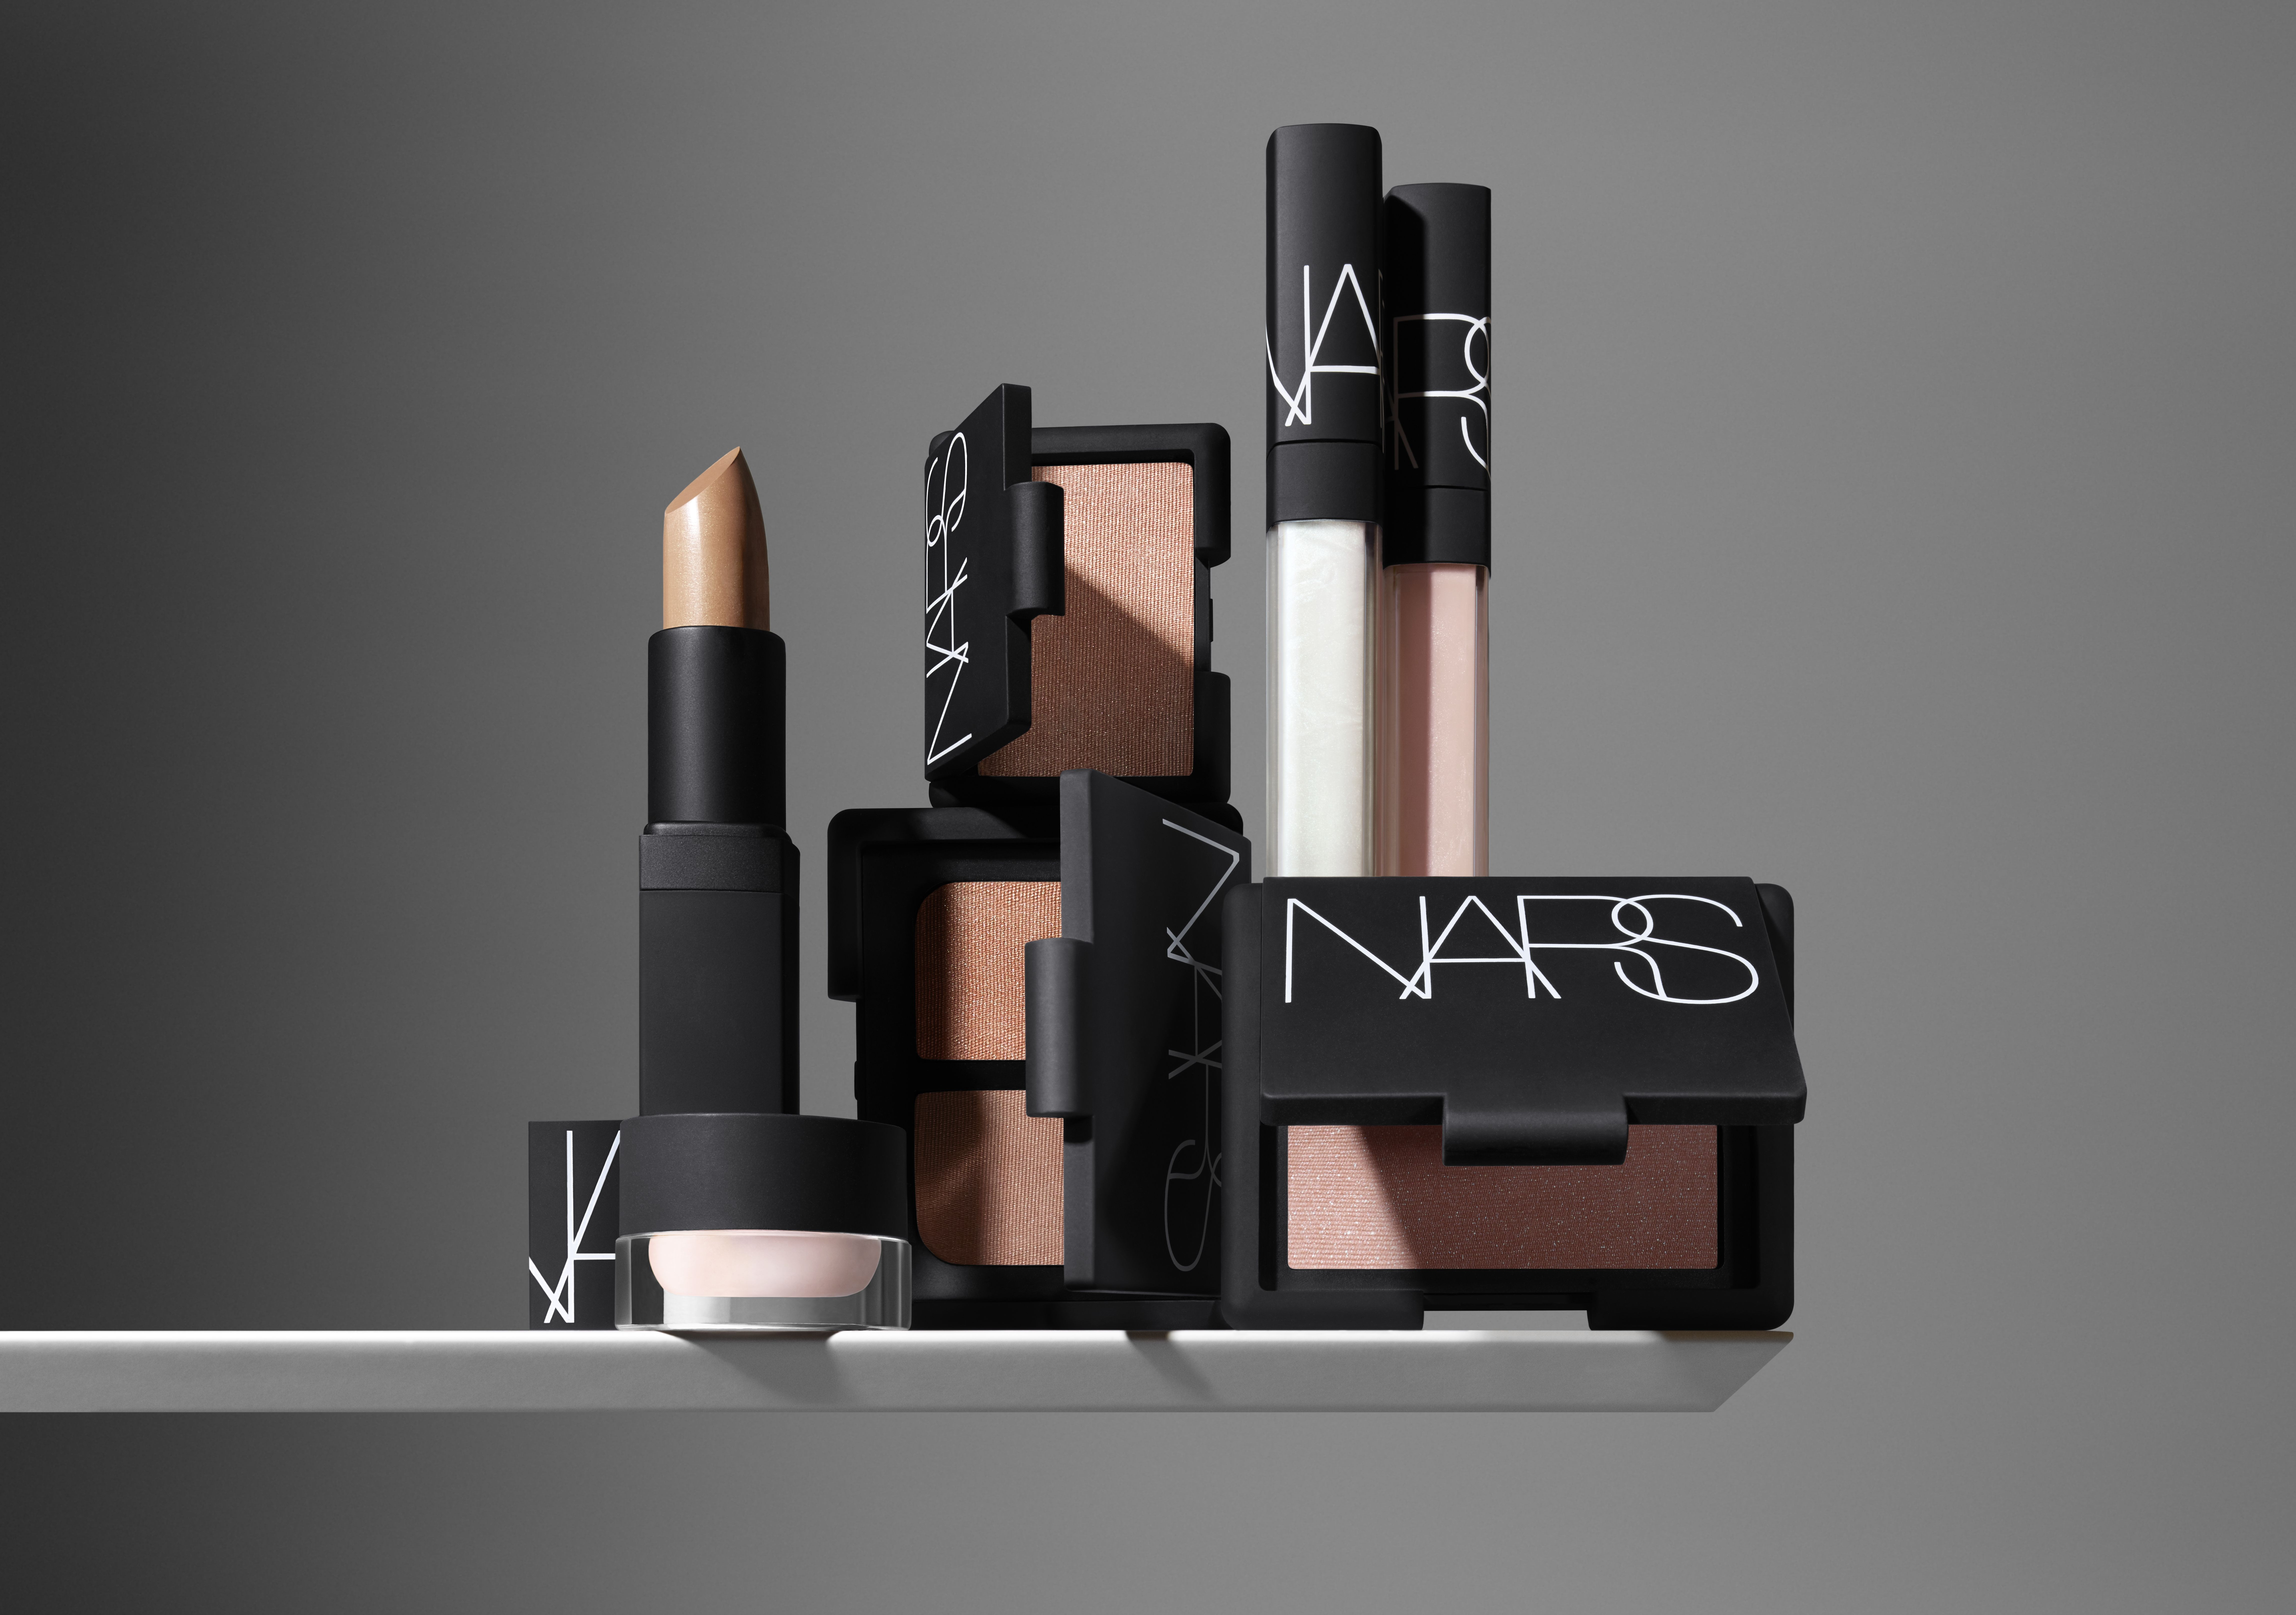 NARS-Spring-2015-Color-Collection-Stylized-Group-Shot-jpeg.jpg (9182×6460)